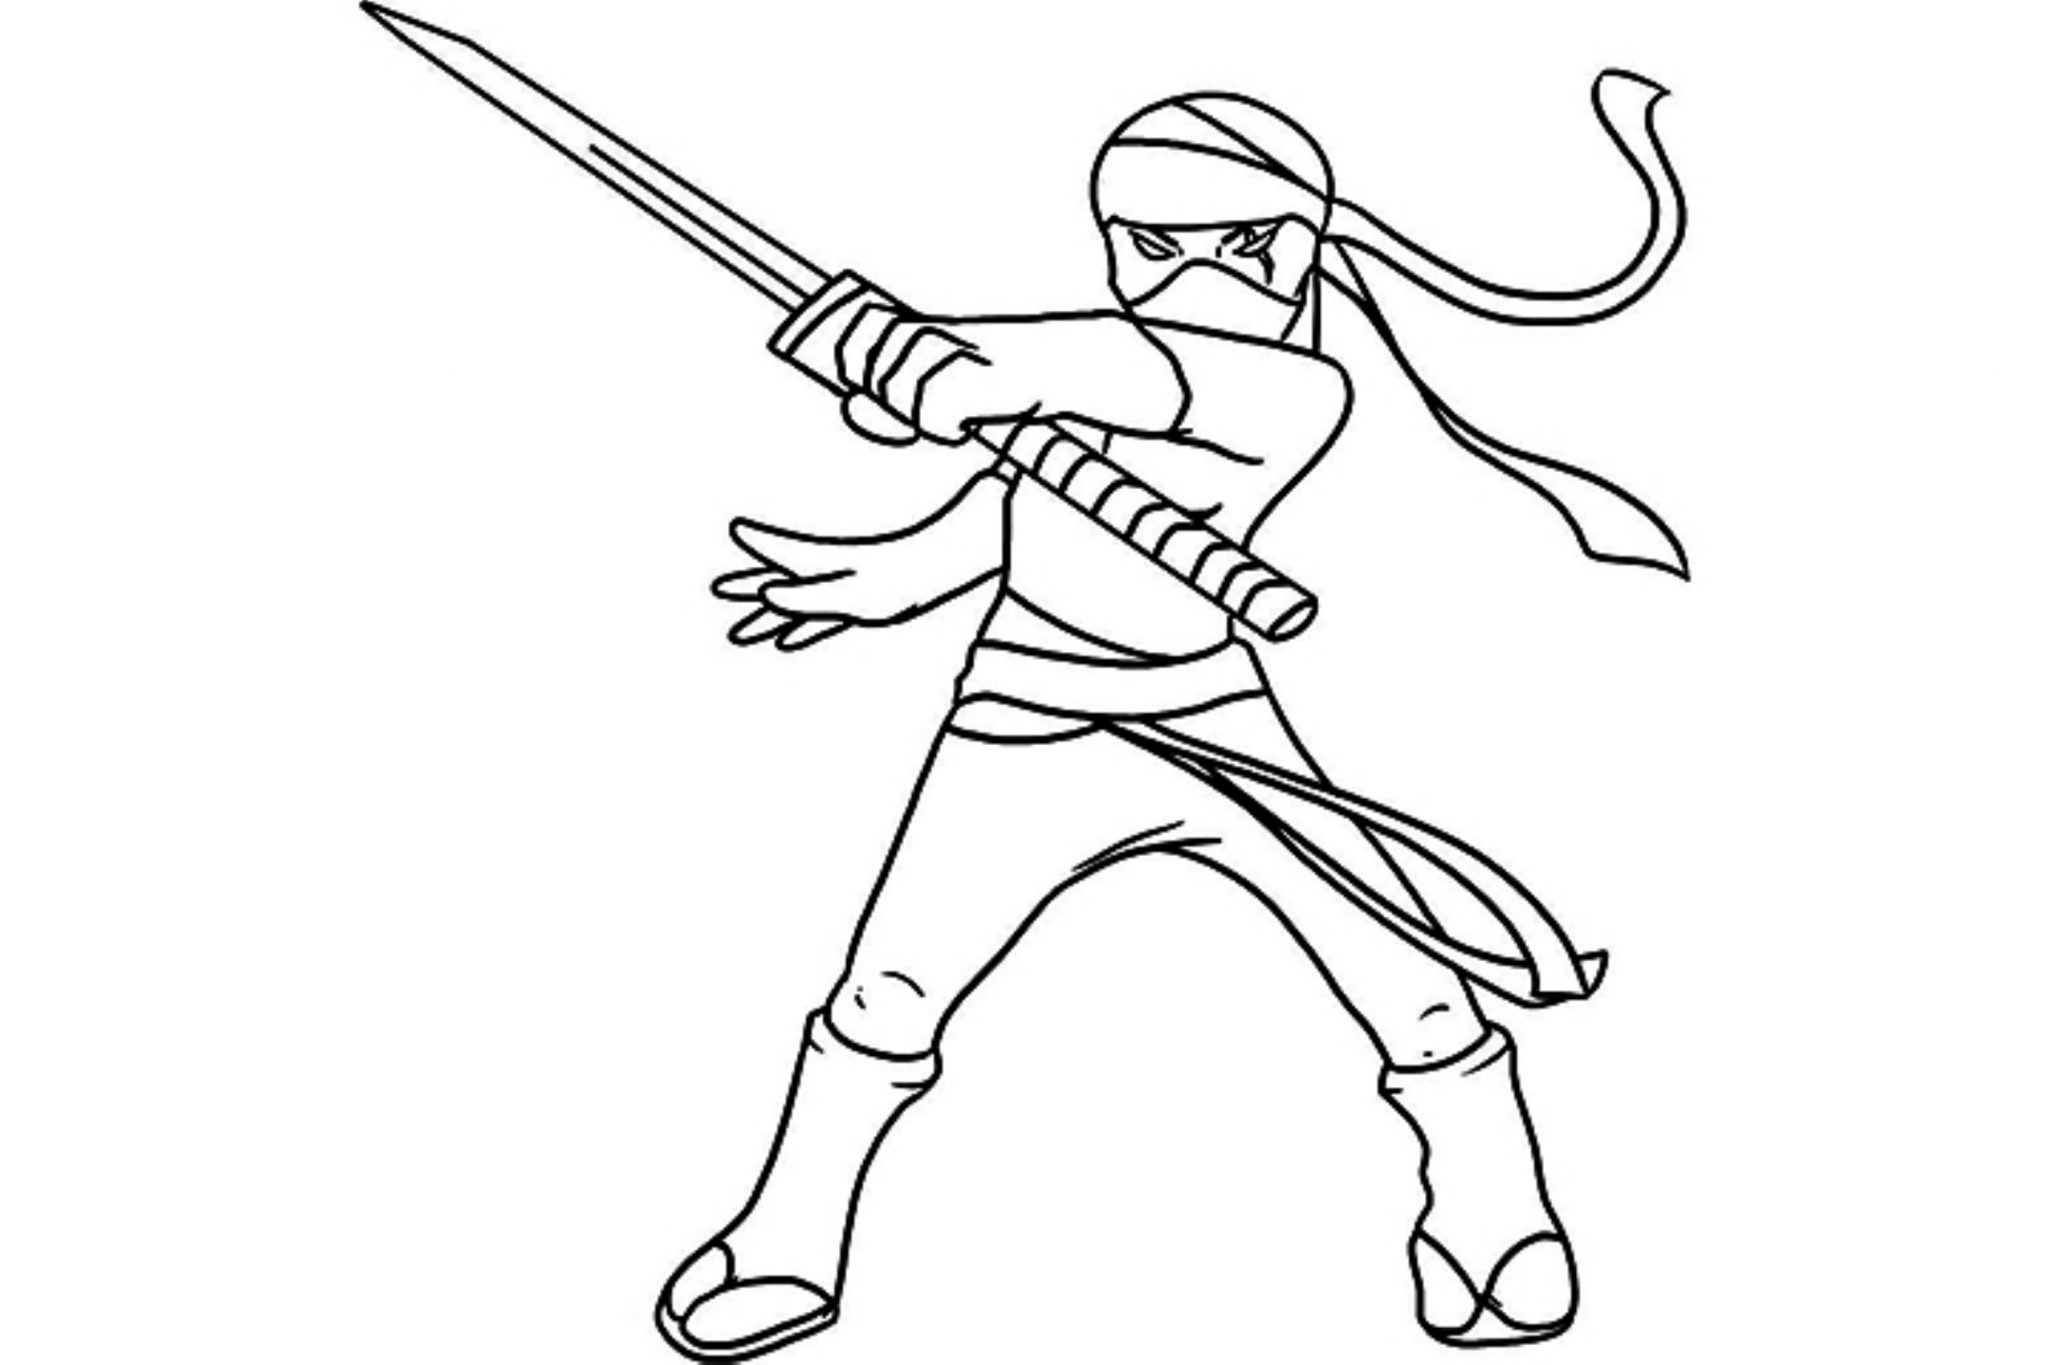 coloring pages of ninjas ninja coloring pages to download and print for free of pages ninjas coloring 1 1